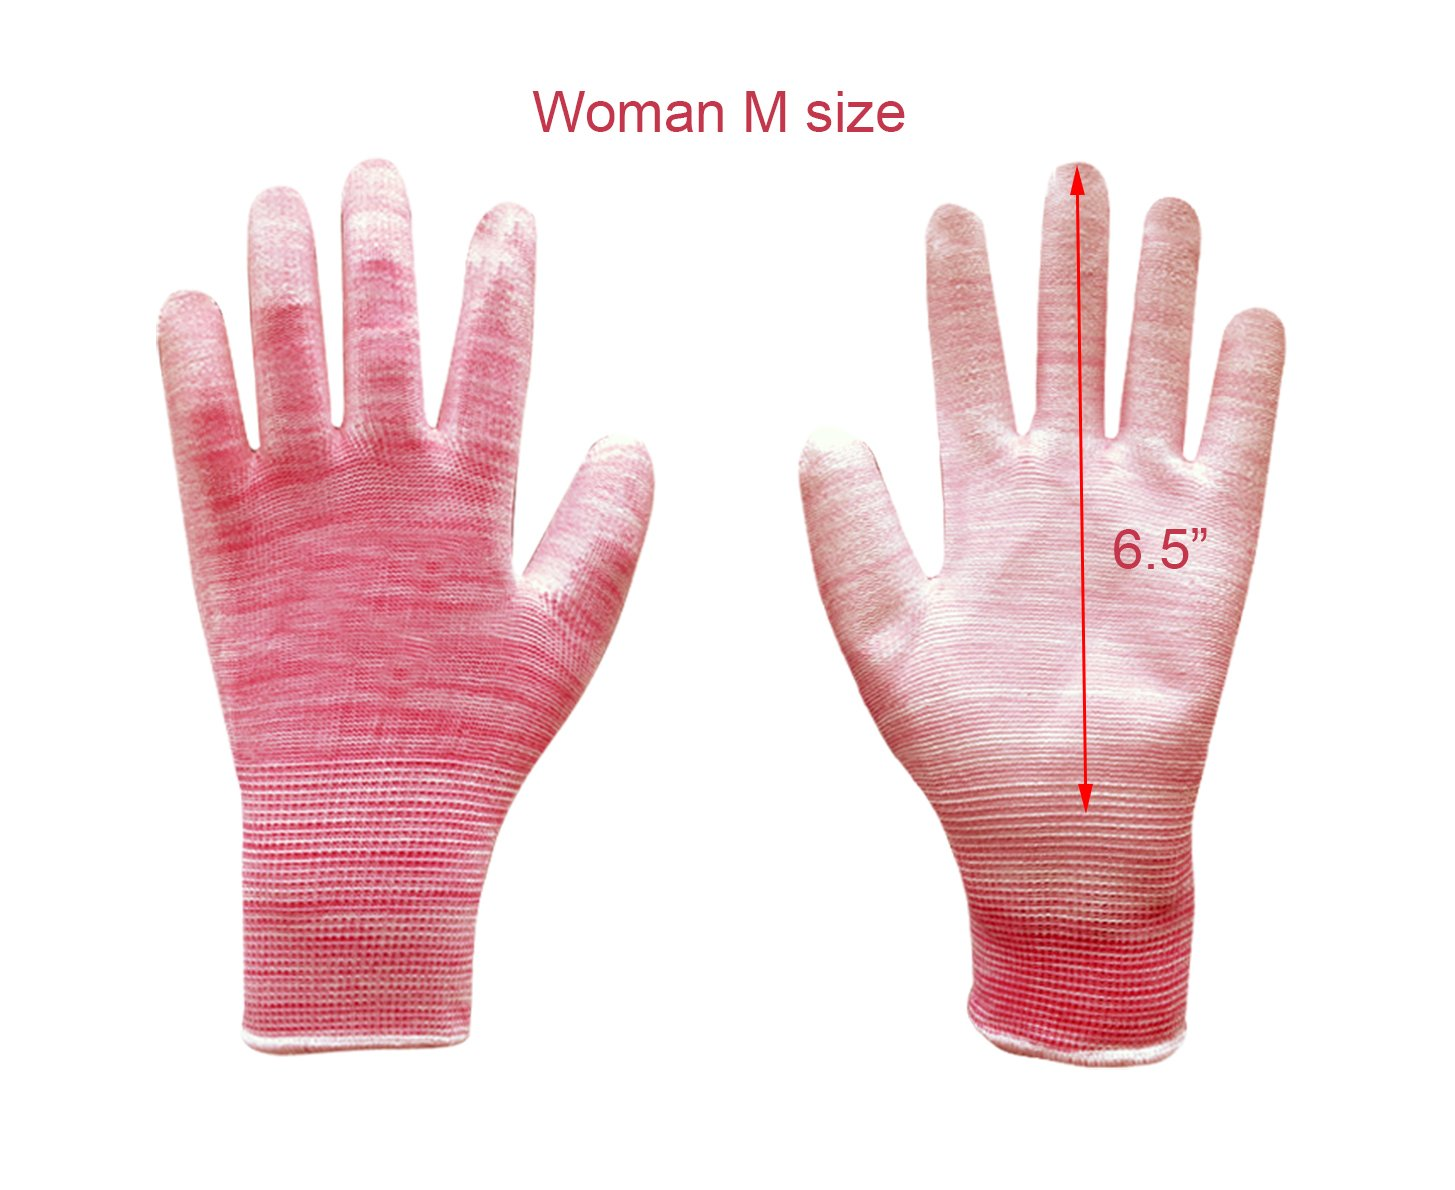 Wholesale pack of 240 pairs Polyurethane coated L size work gloves, High air permeability, Comfortable fit and Light. (Pink-M-240pairs)